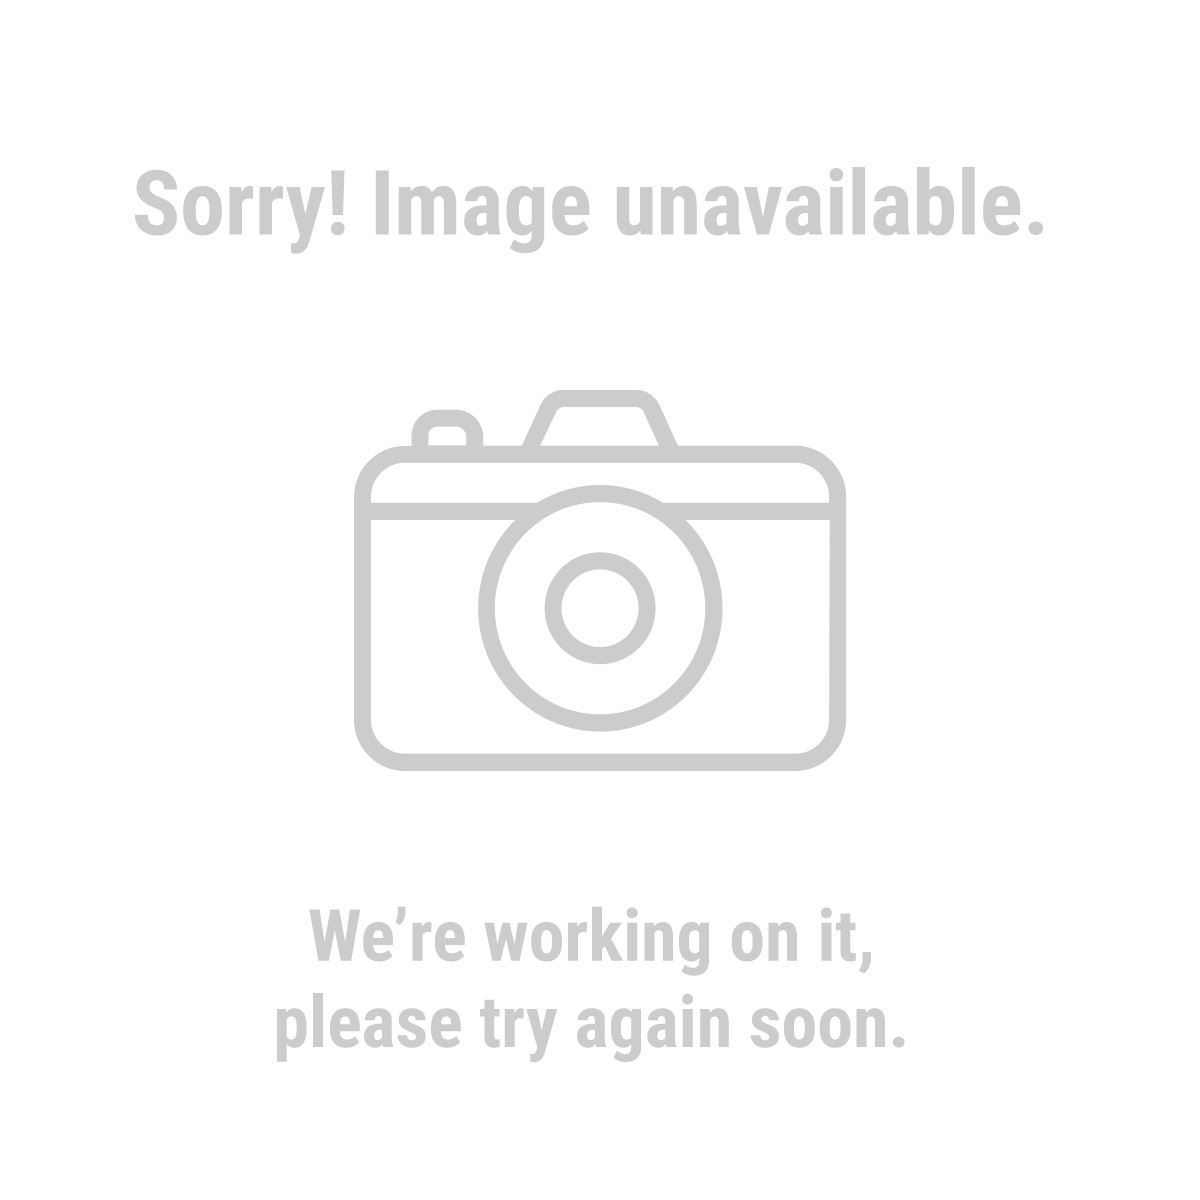 Haul-Master 69148 1000 Lb. Capacity Hydraulic Table Cart